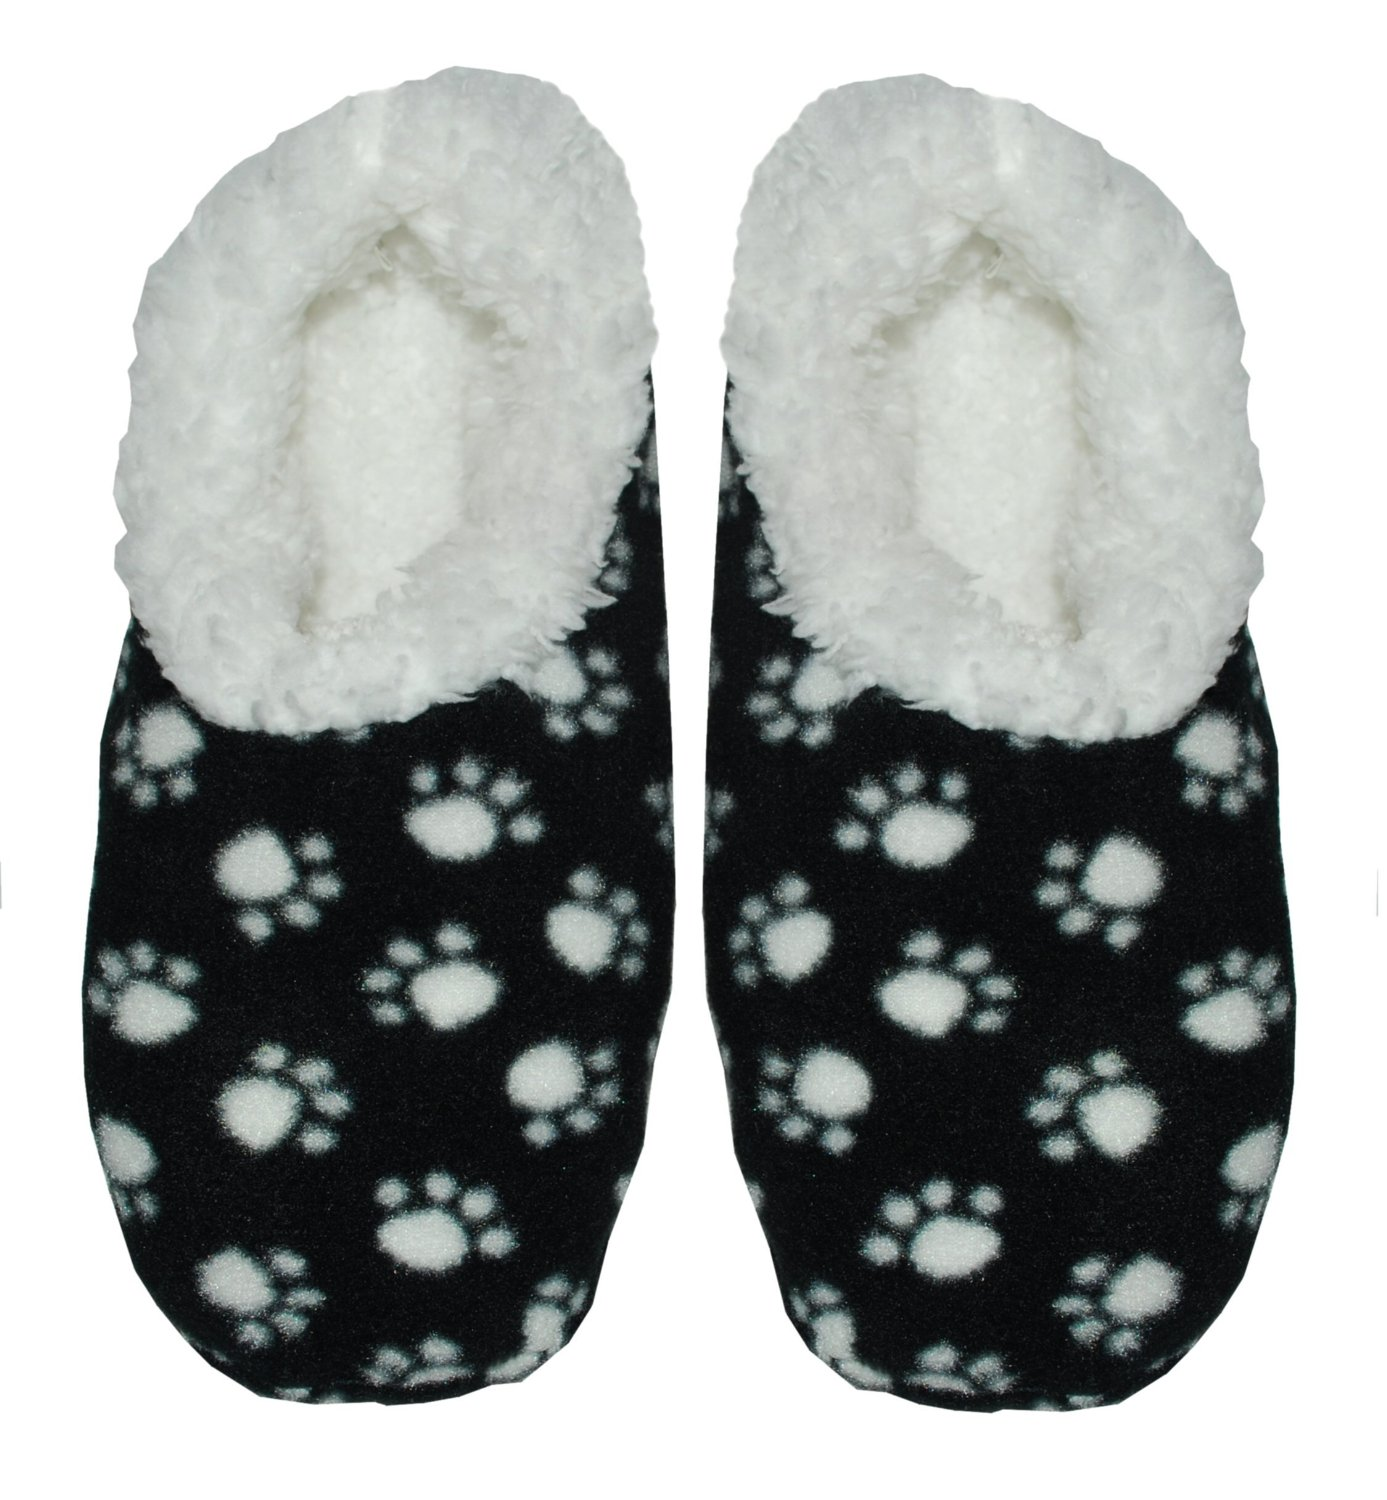 Snoozie Slippers Snoozies Paw Print Fleece Lined Women S